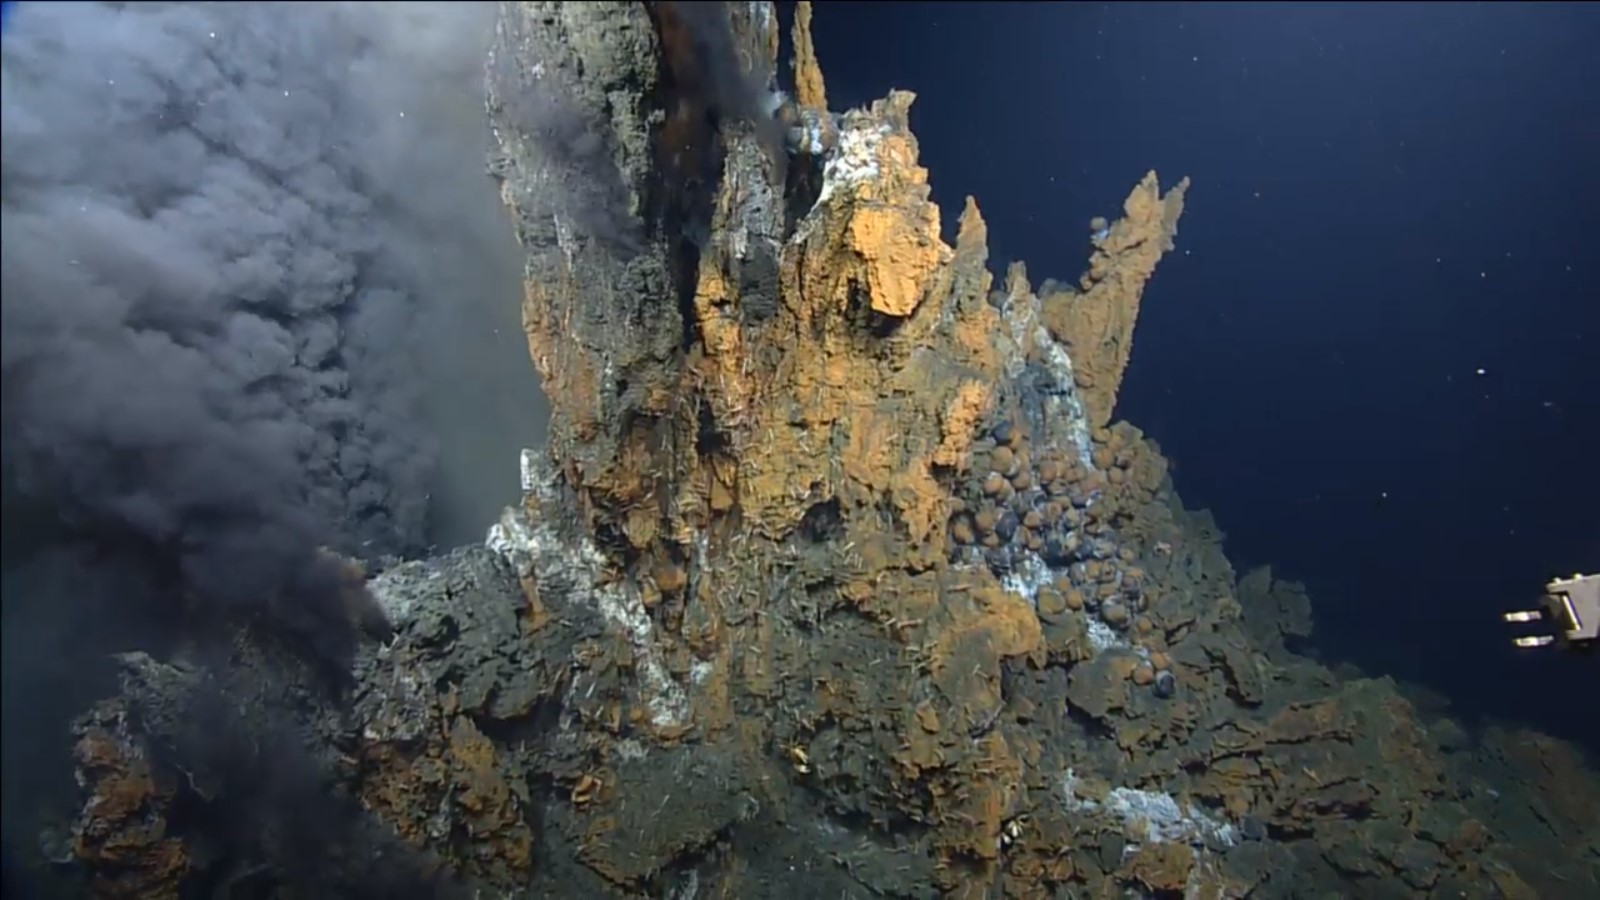 image of hydrothermal vents